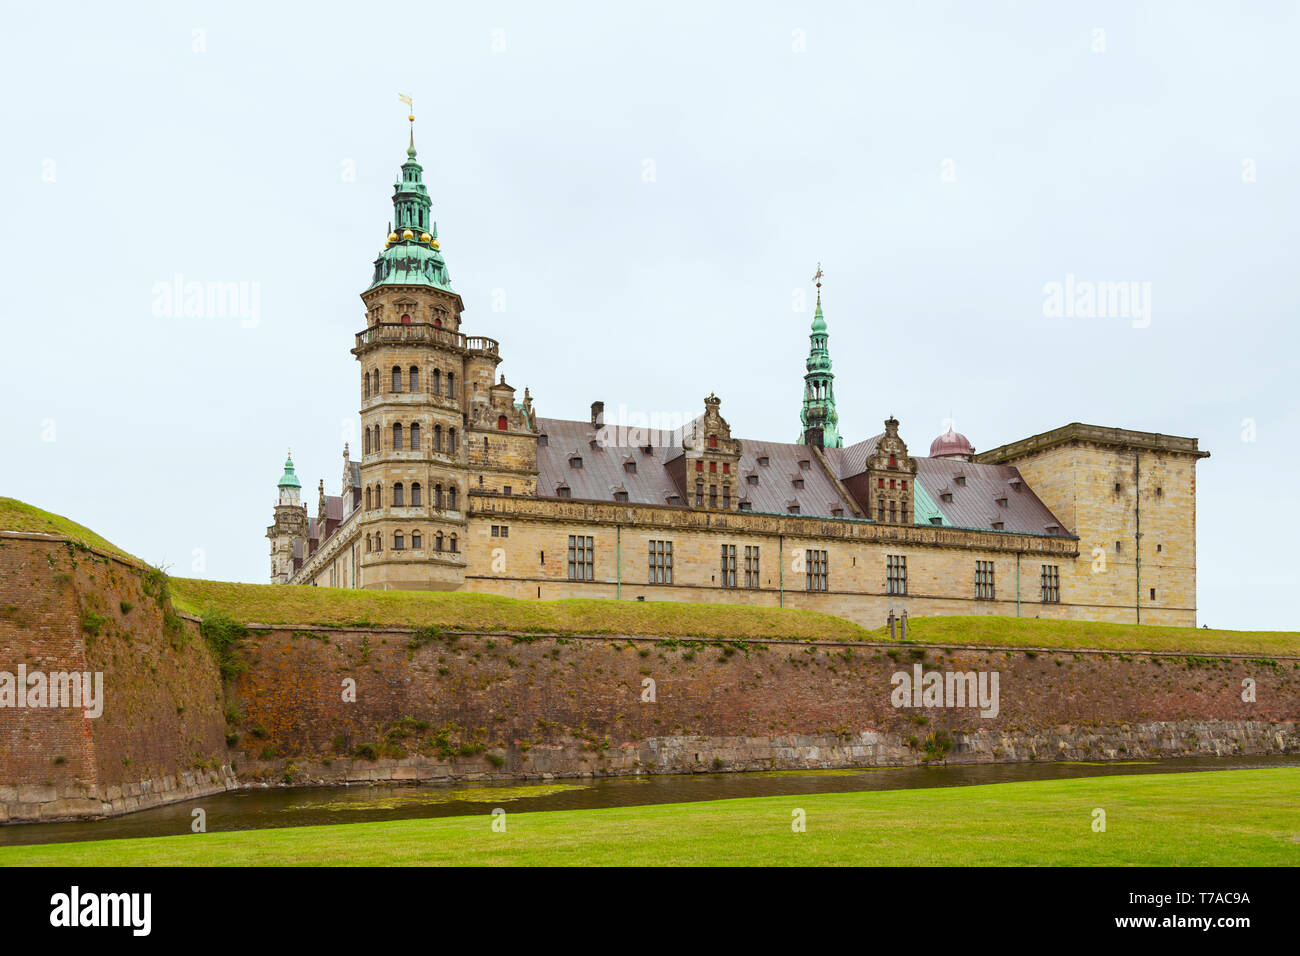 Kronborg castle made famous by William Shakespeare situated in Danish town of Helsingor. Kronborg Castle, unesco world heritage and immortalised as El - Stock Image